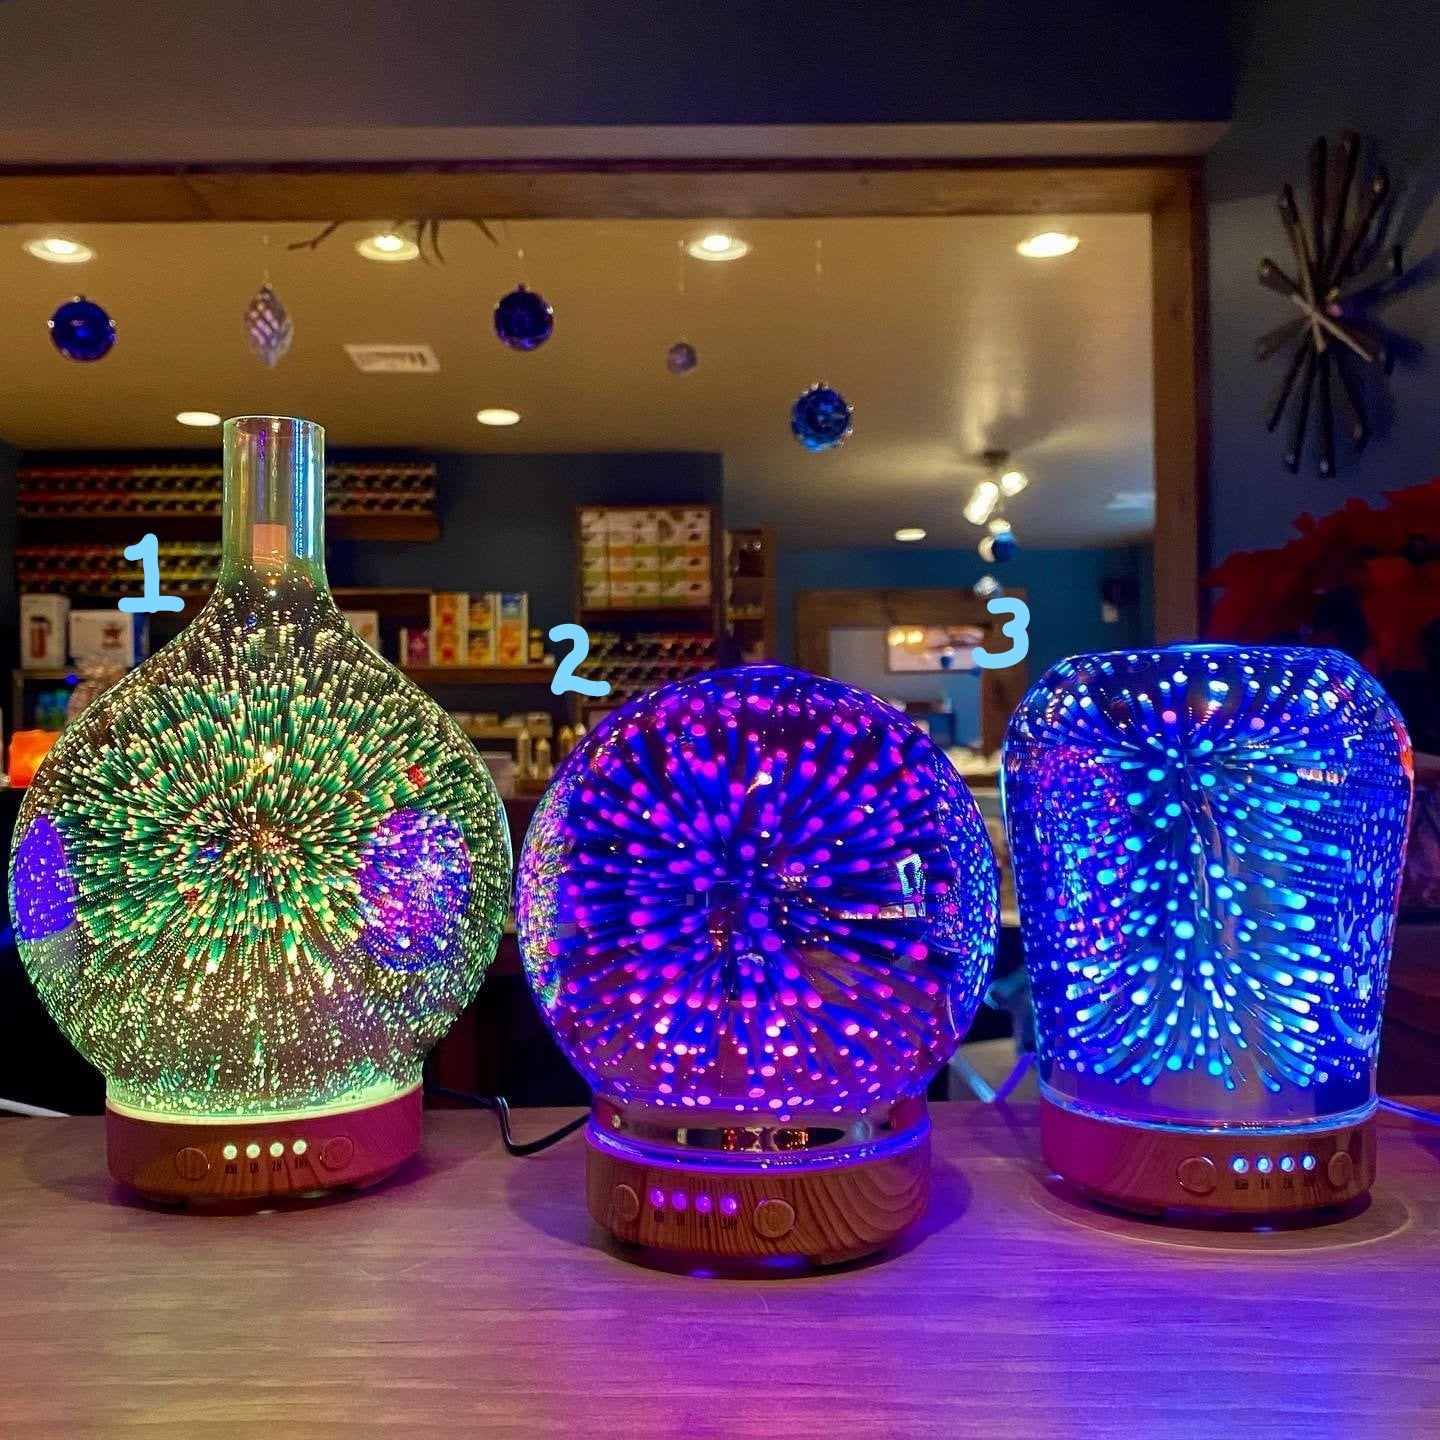 3D Diffuser - Various Styles